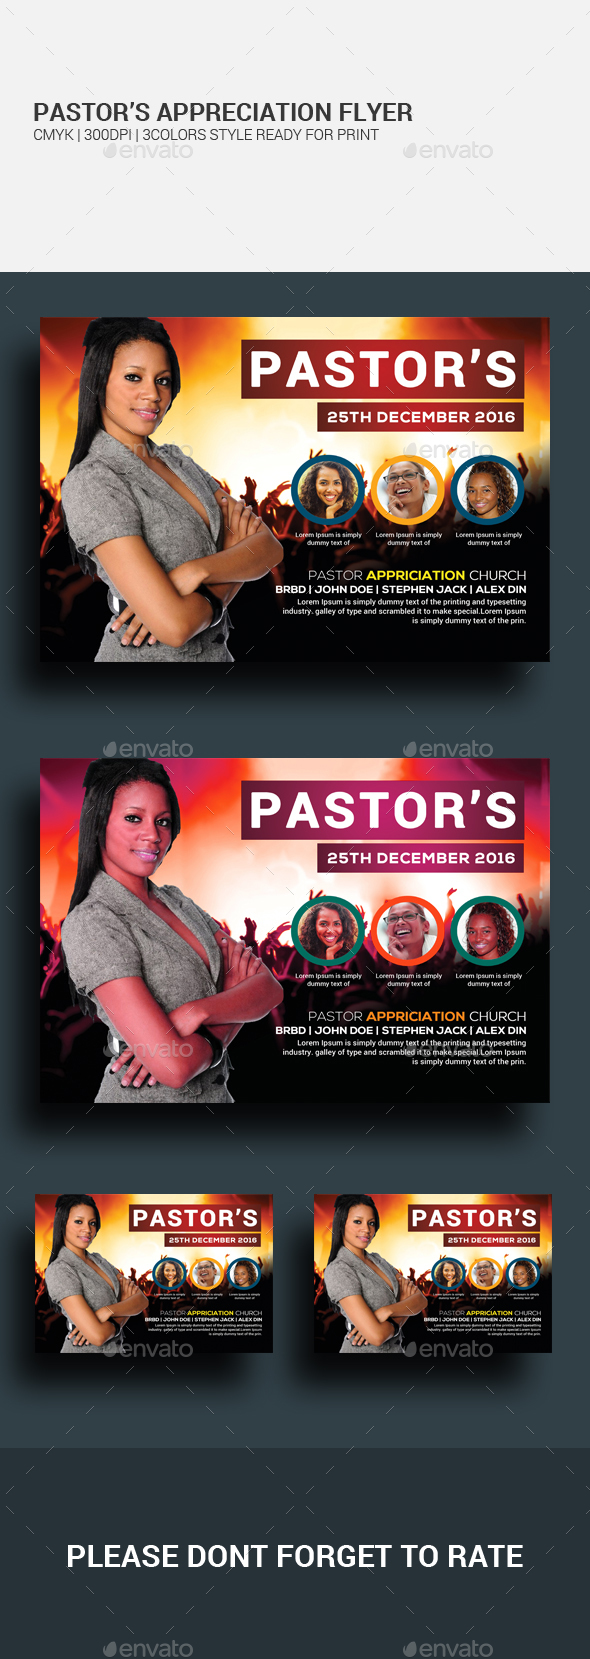 Pastor Appreciation Graphics Designs Templates